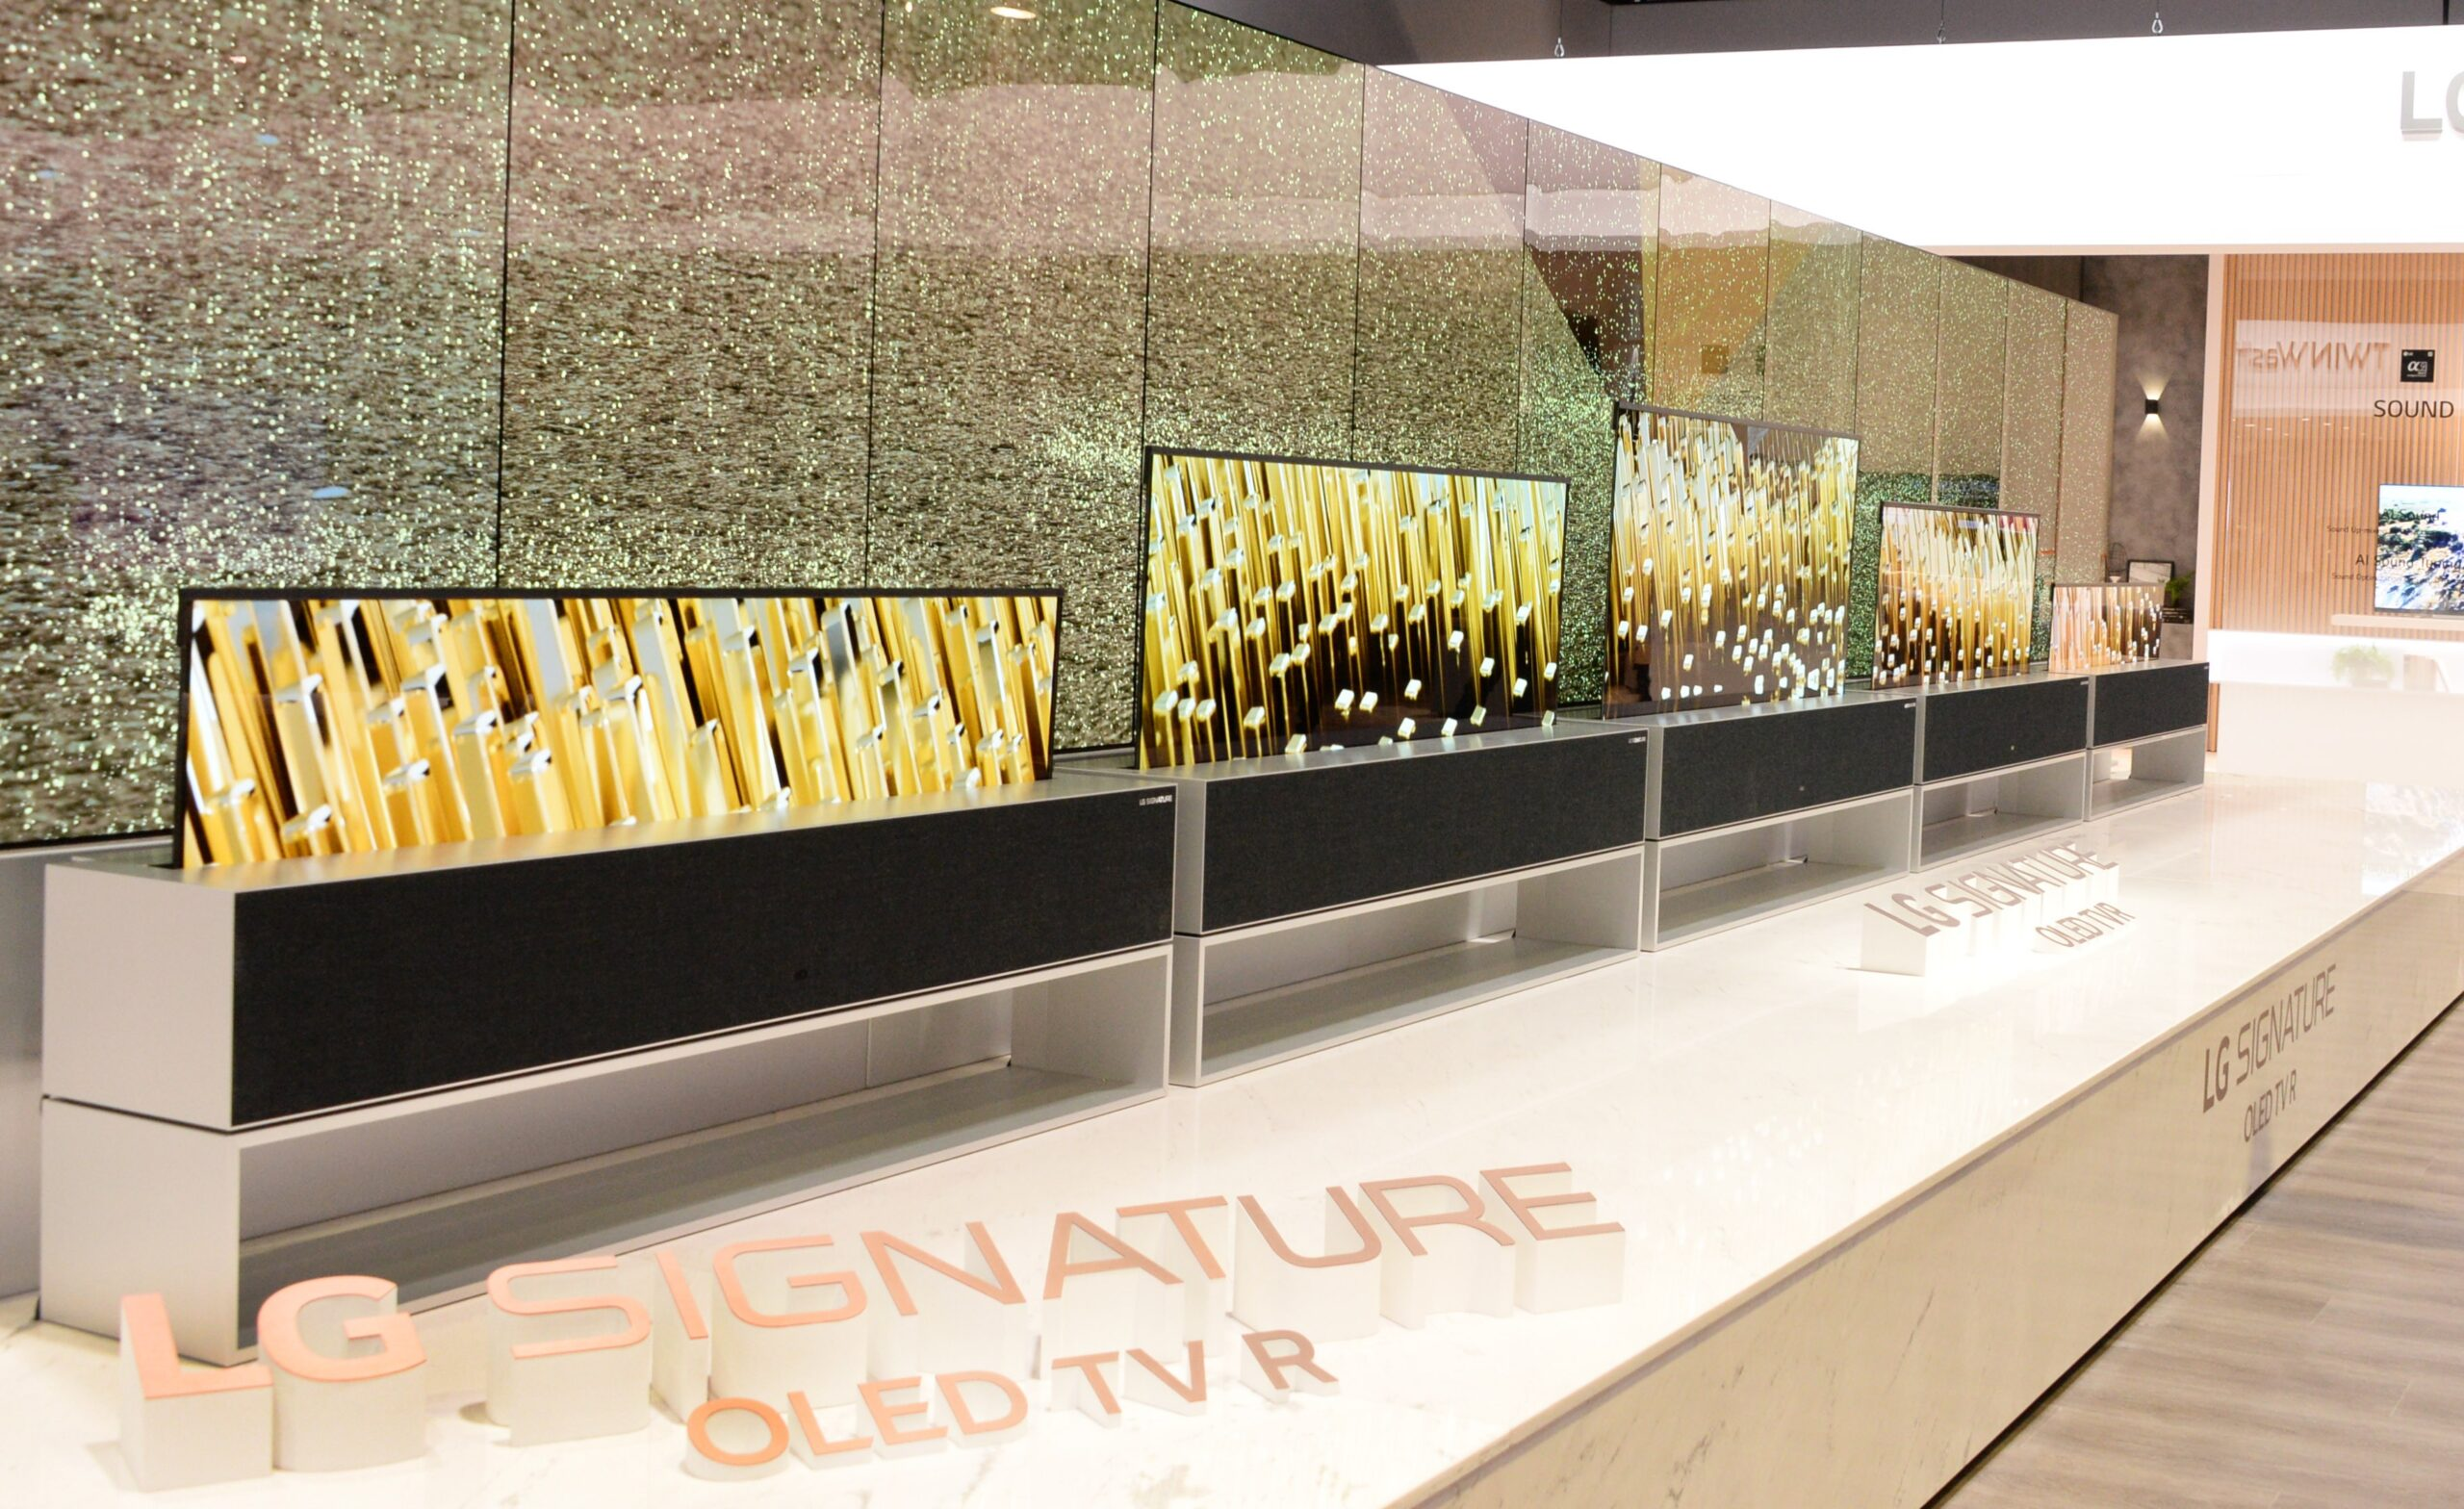 Close view of LG SIGNATURE OLED TV R display zone with the rollable OLED screen furling down into the control box